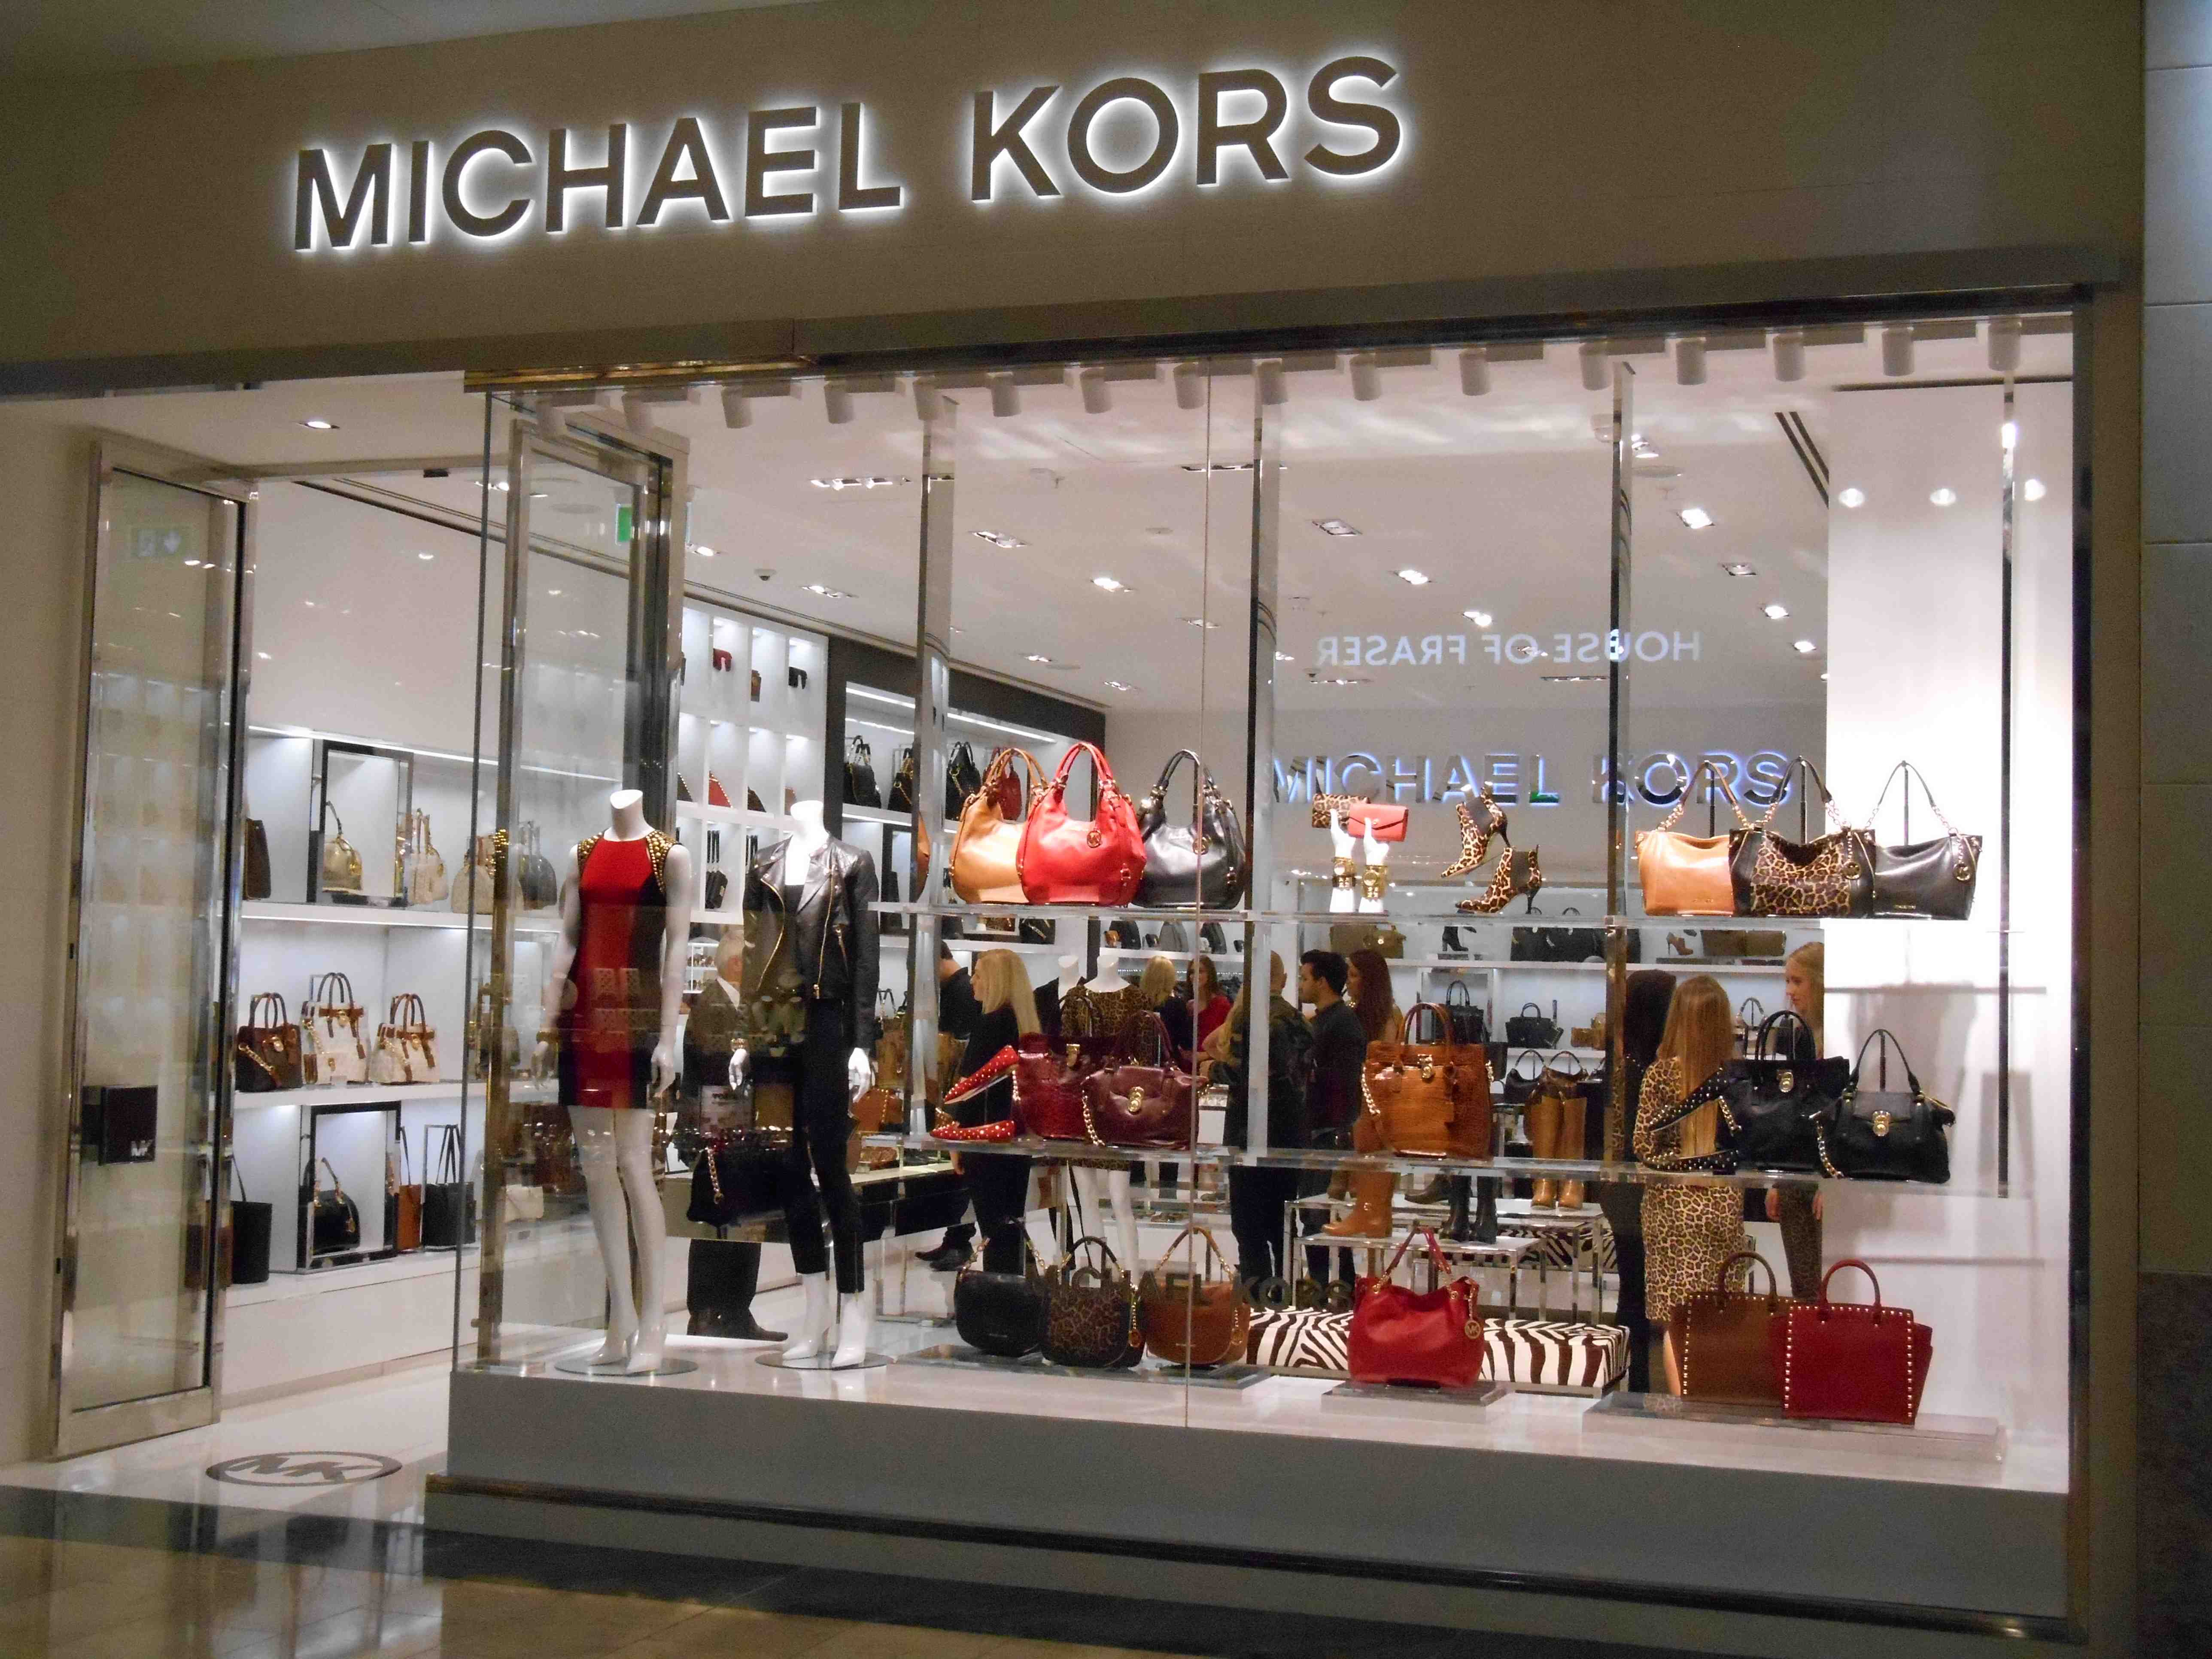 michael kors opens store at dundrum town centre in dublin ireland love this. Black Bedroom Furniture Sets. Home Design Ideas